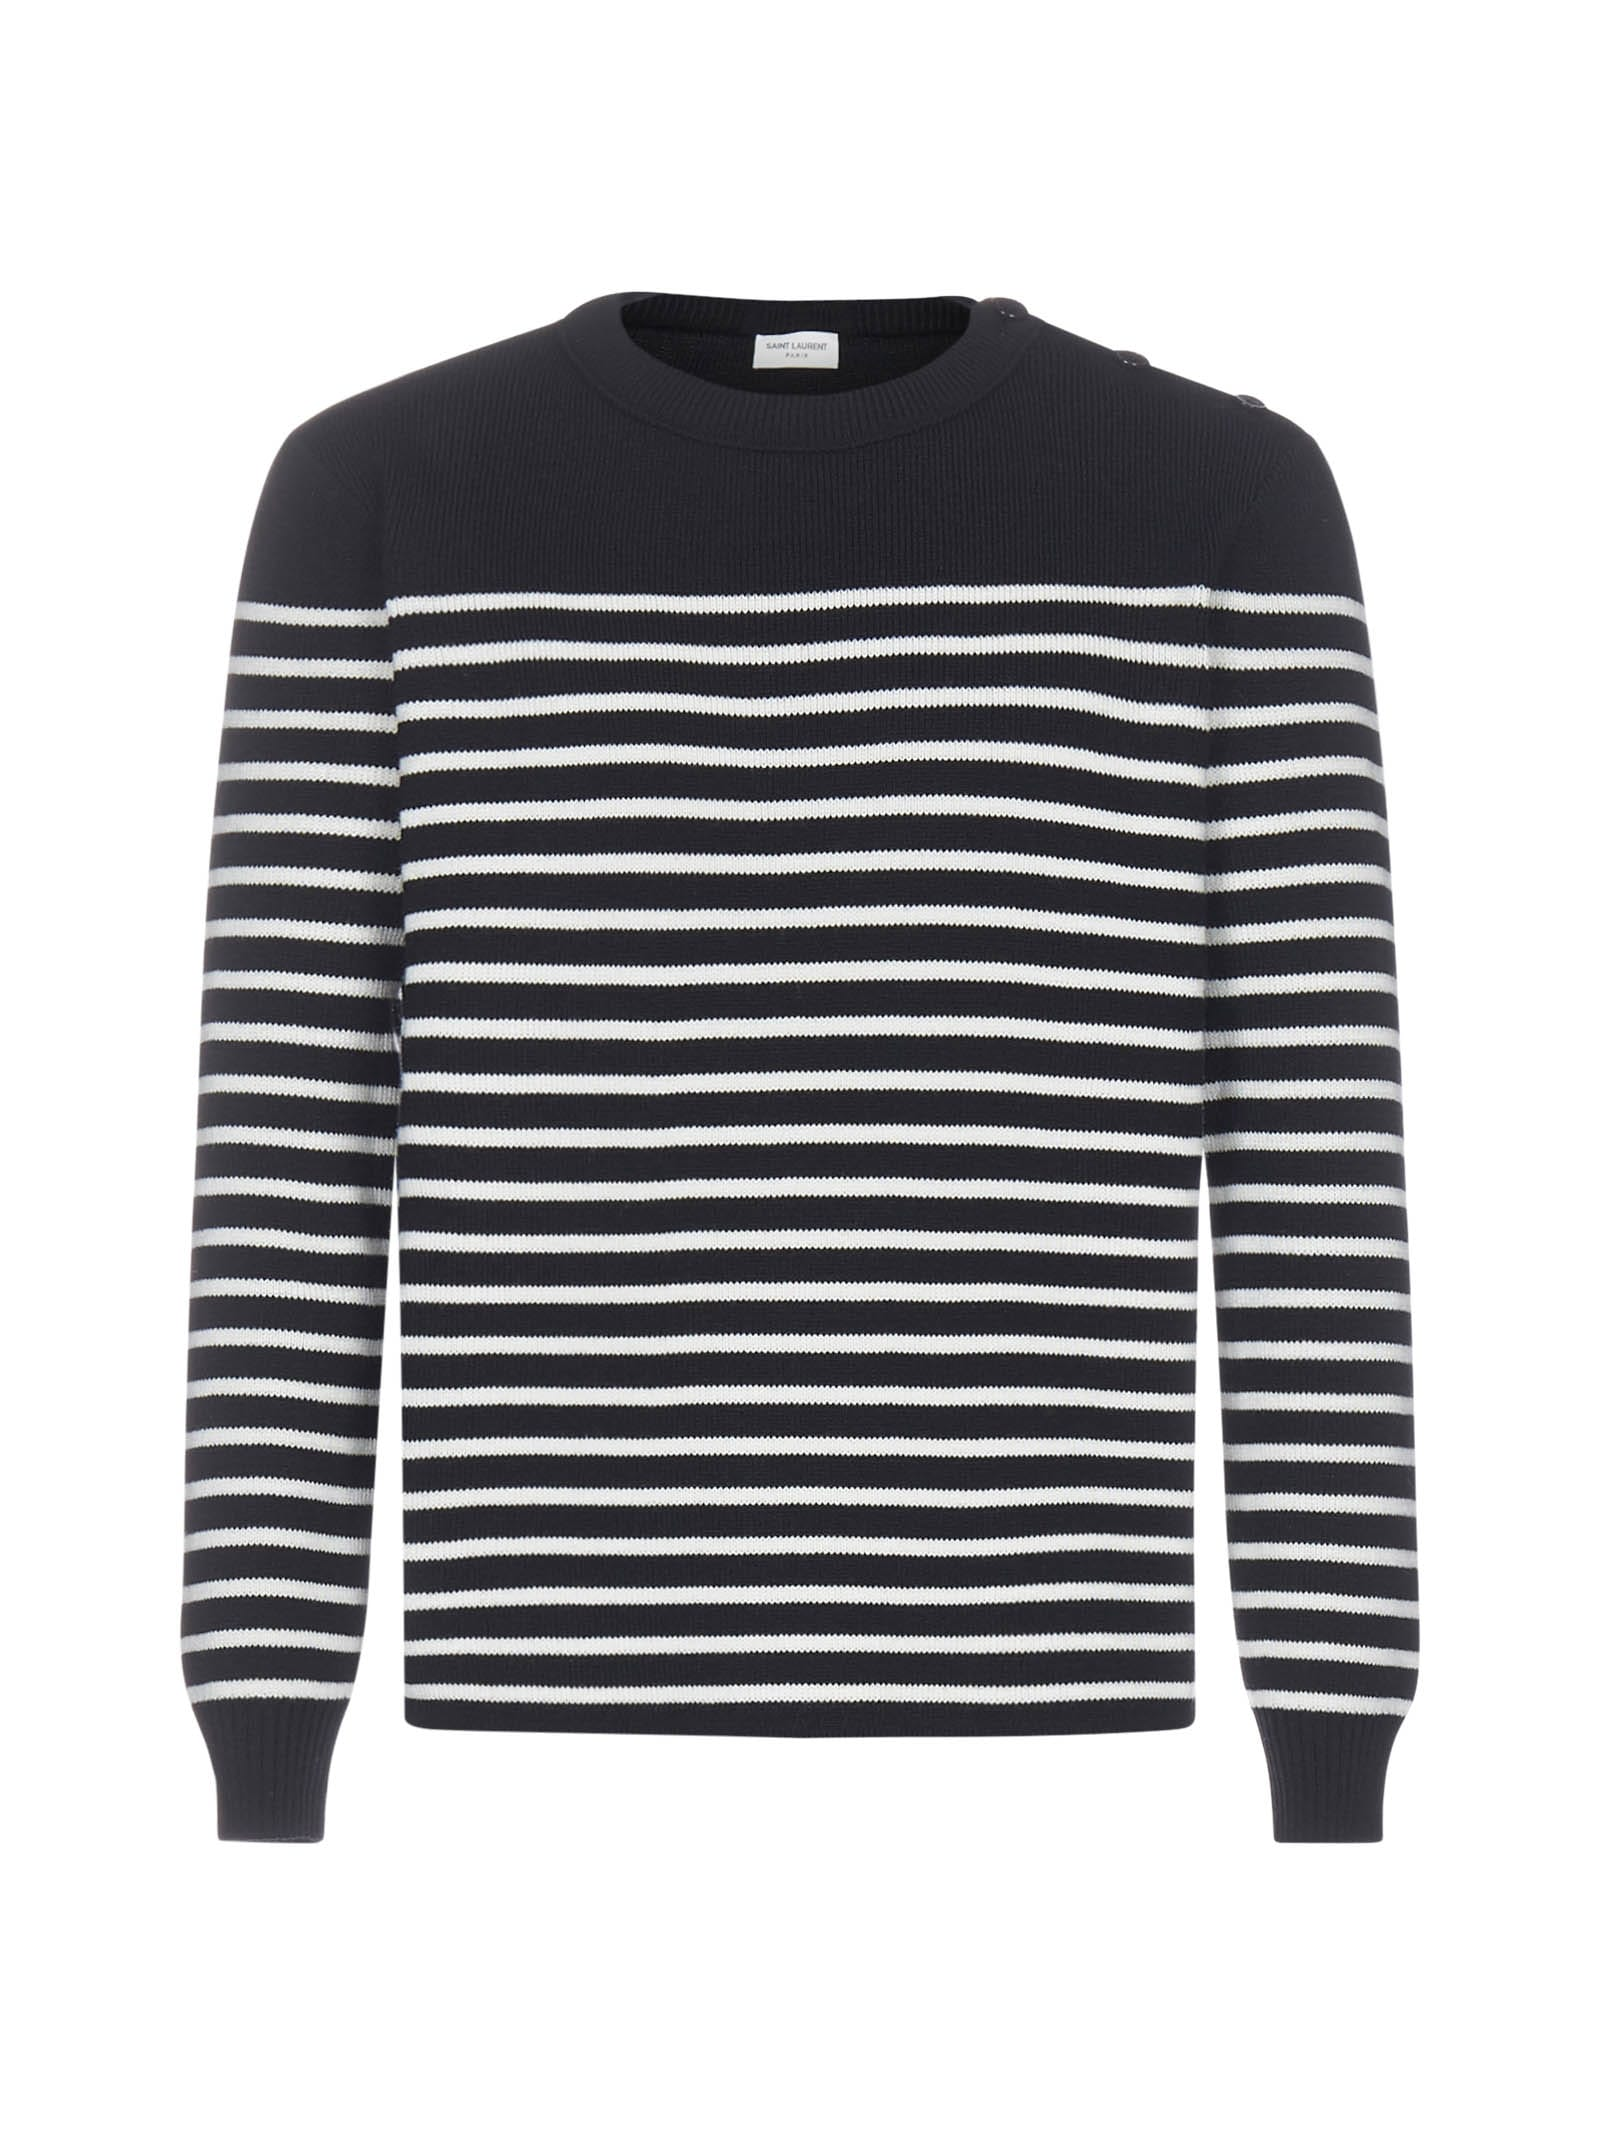 Saint Laurent Striped Wool And Cotton Sweater